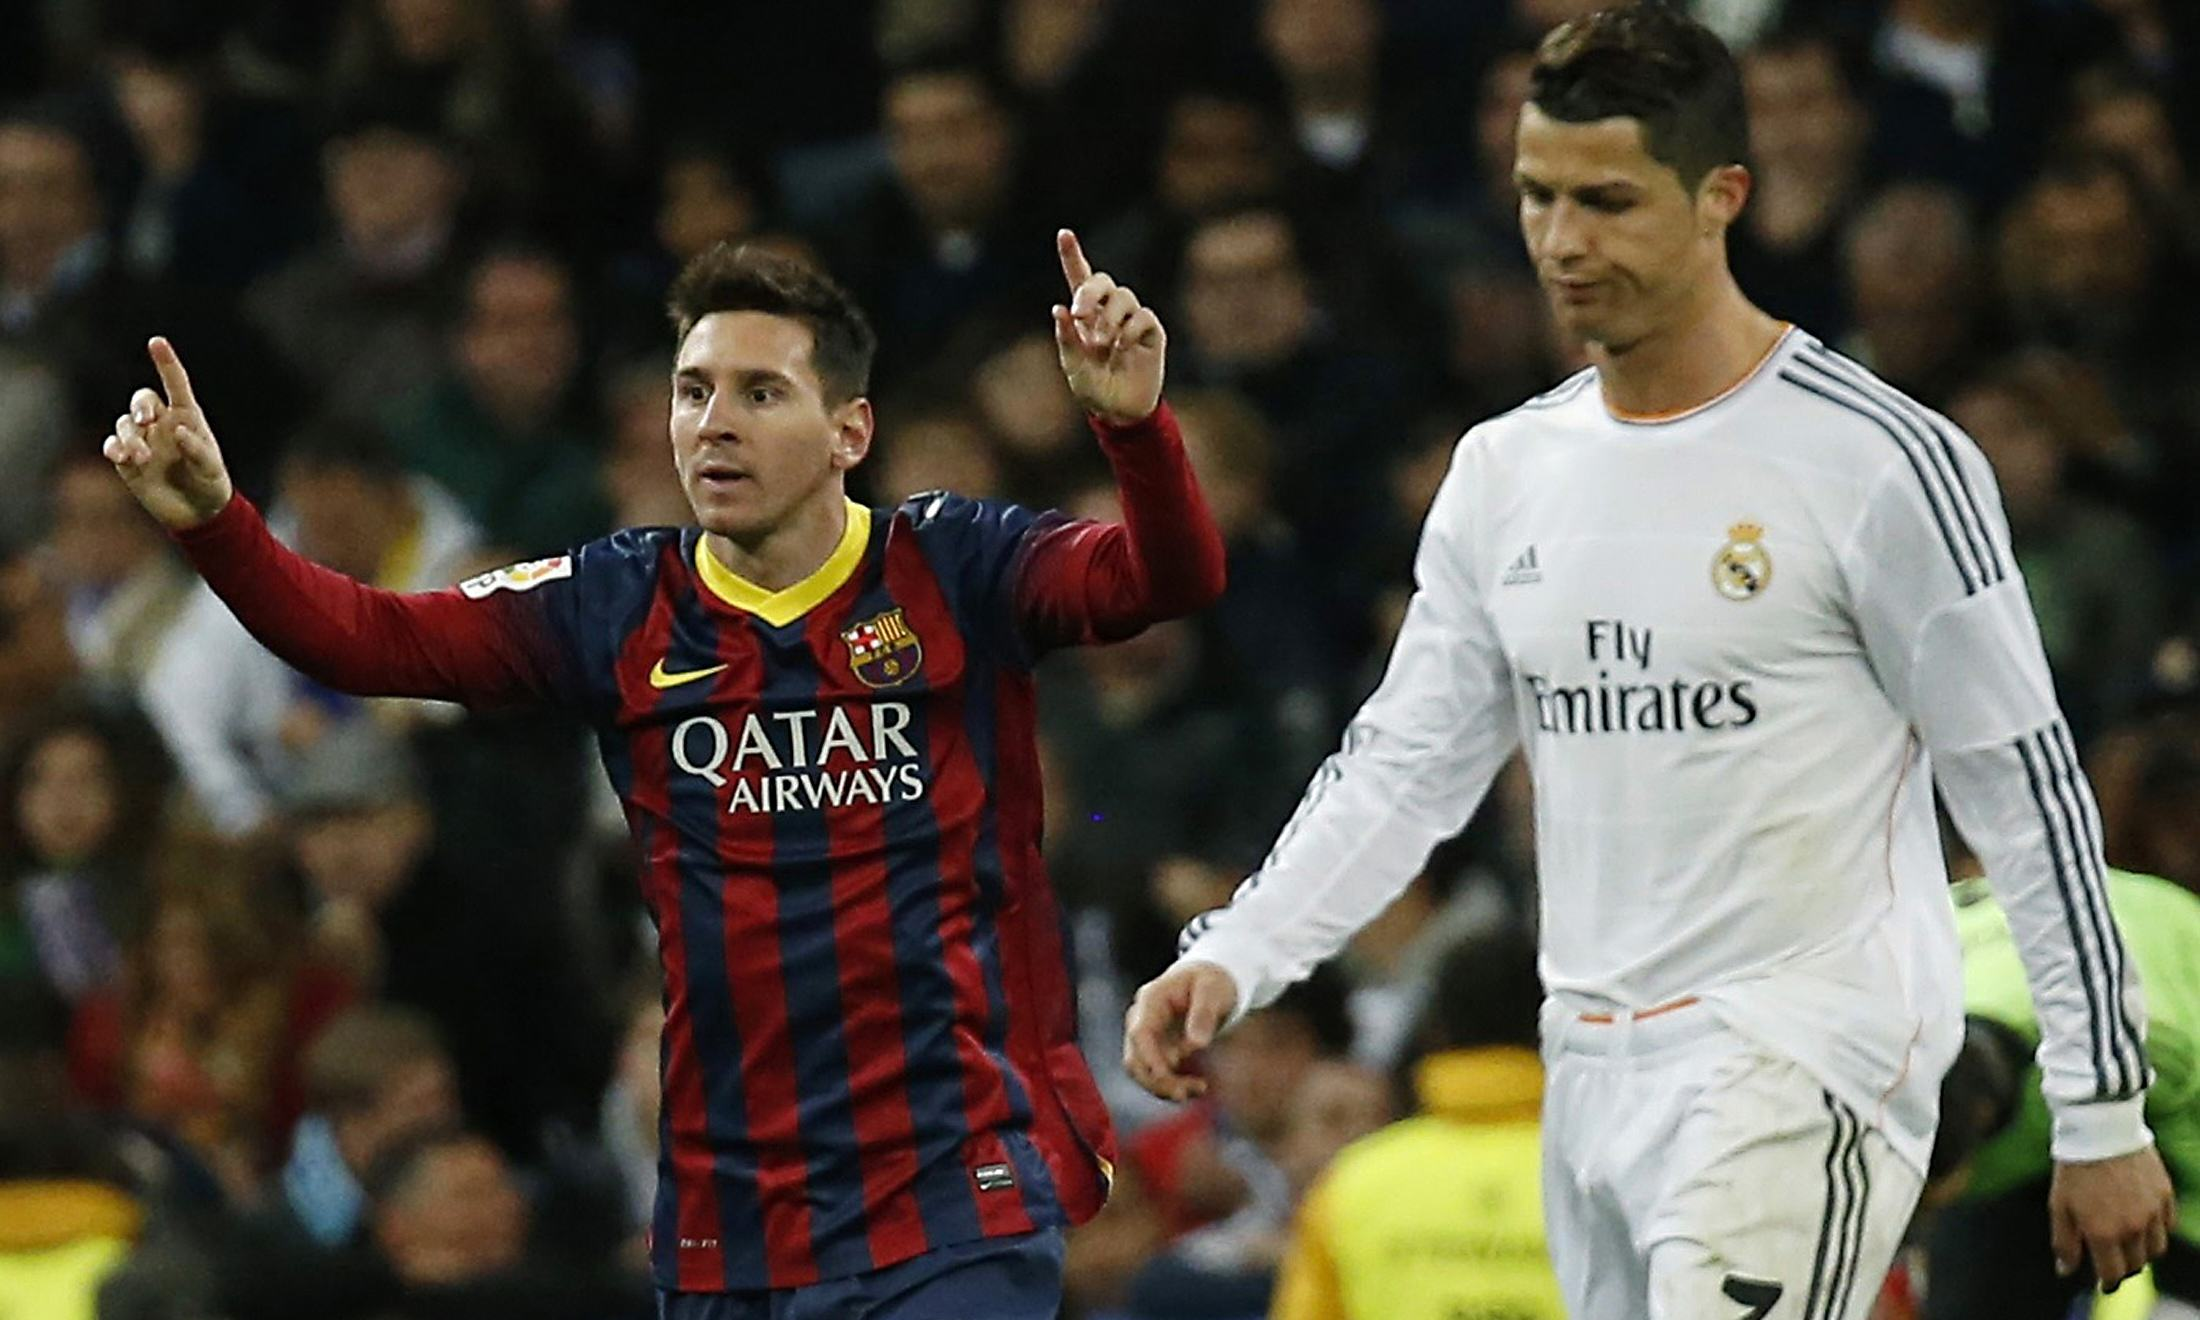 Five Times Messi Got The Better Of Ronaldo In 2015 messicr1